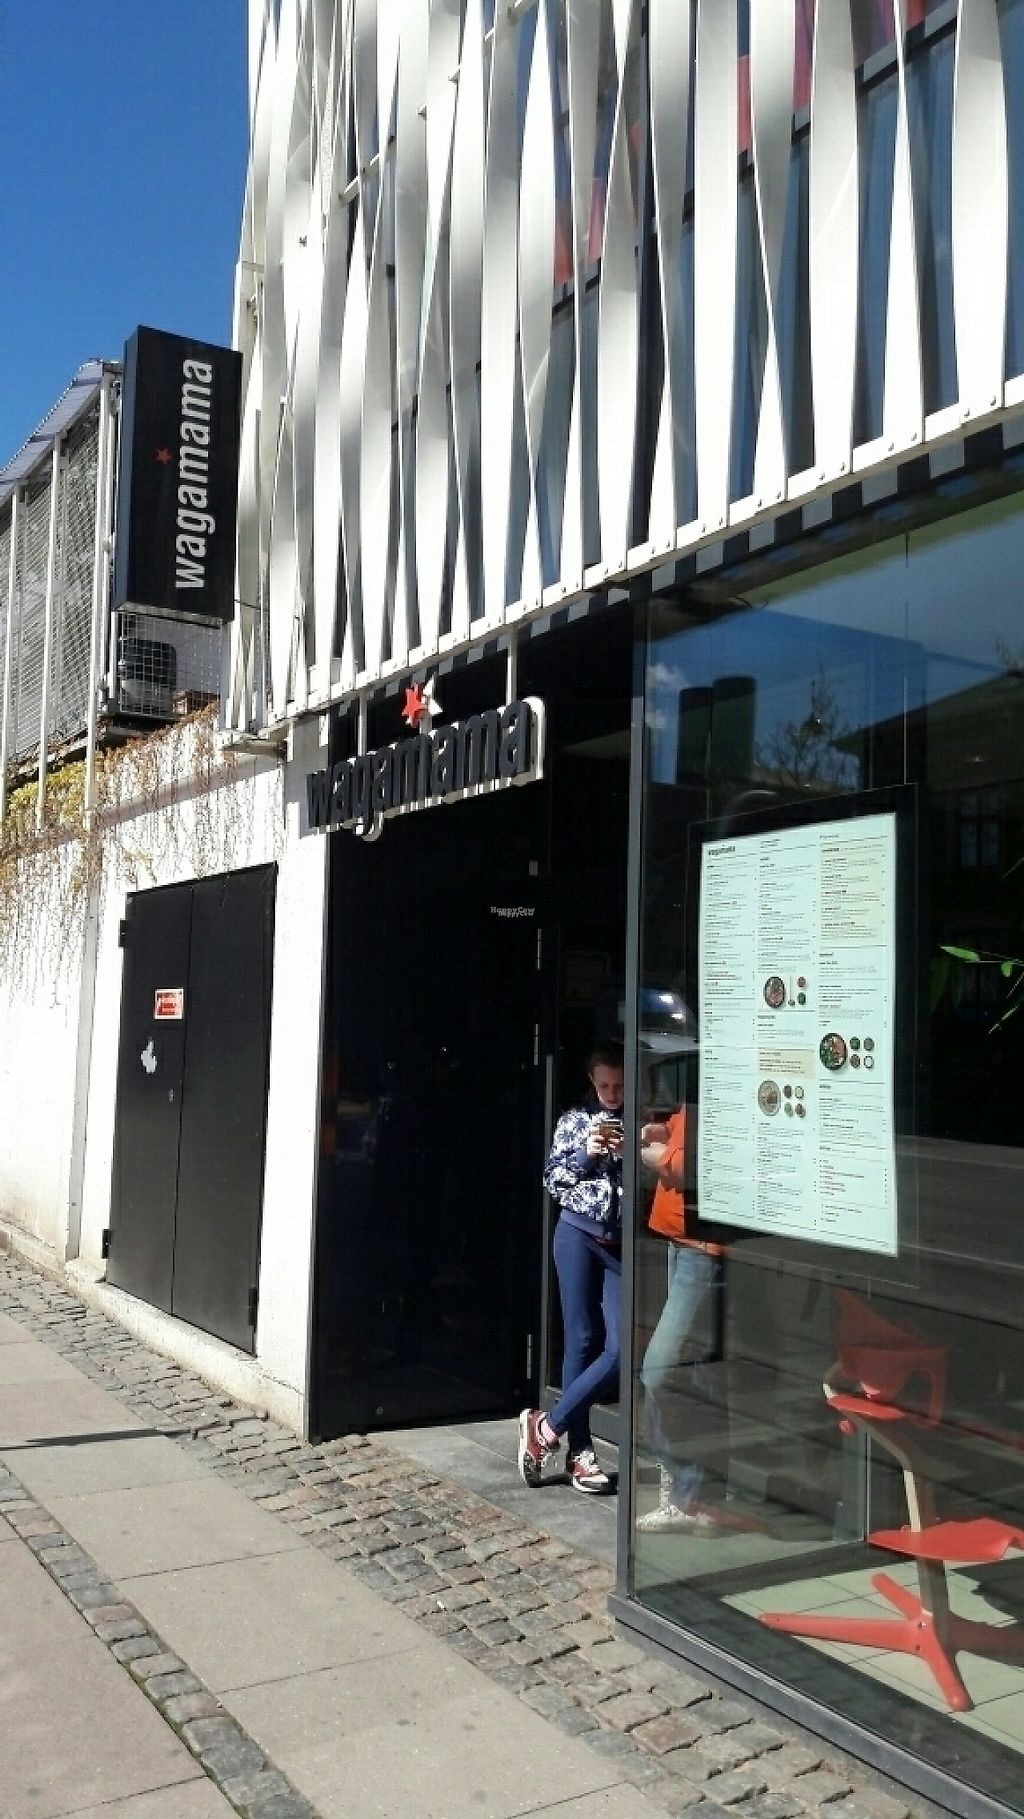 """Photo of Wagamama - Tivoli  by <a href=""""/members/profile/piffelina"""">piffelina</a> <br/>Wagamama - seen from the street  <br/> April 30, 2017  - <a href='/contact/abuse/image/69591/254064'>Report</a>"""